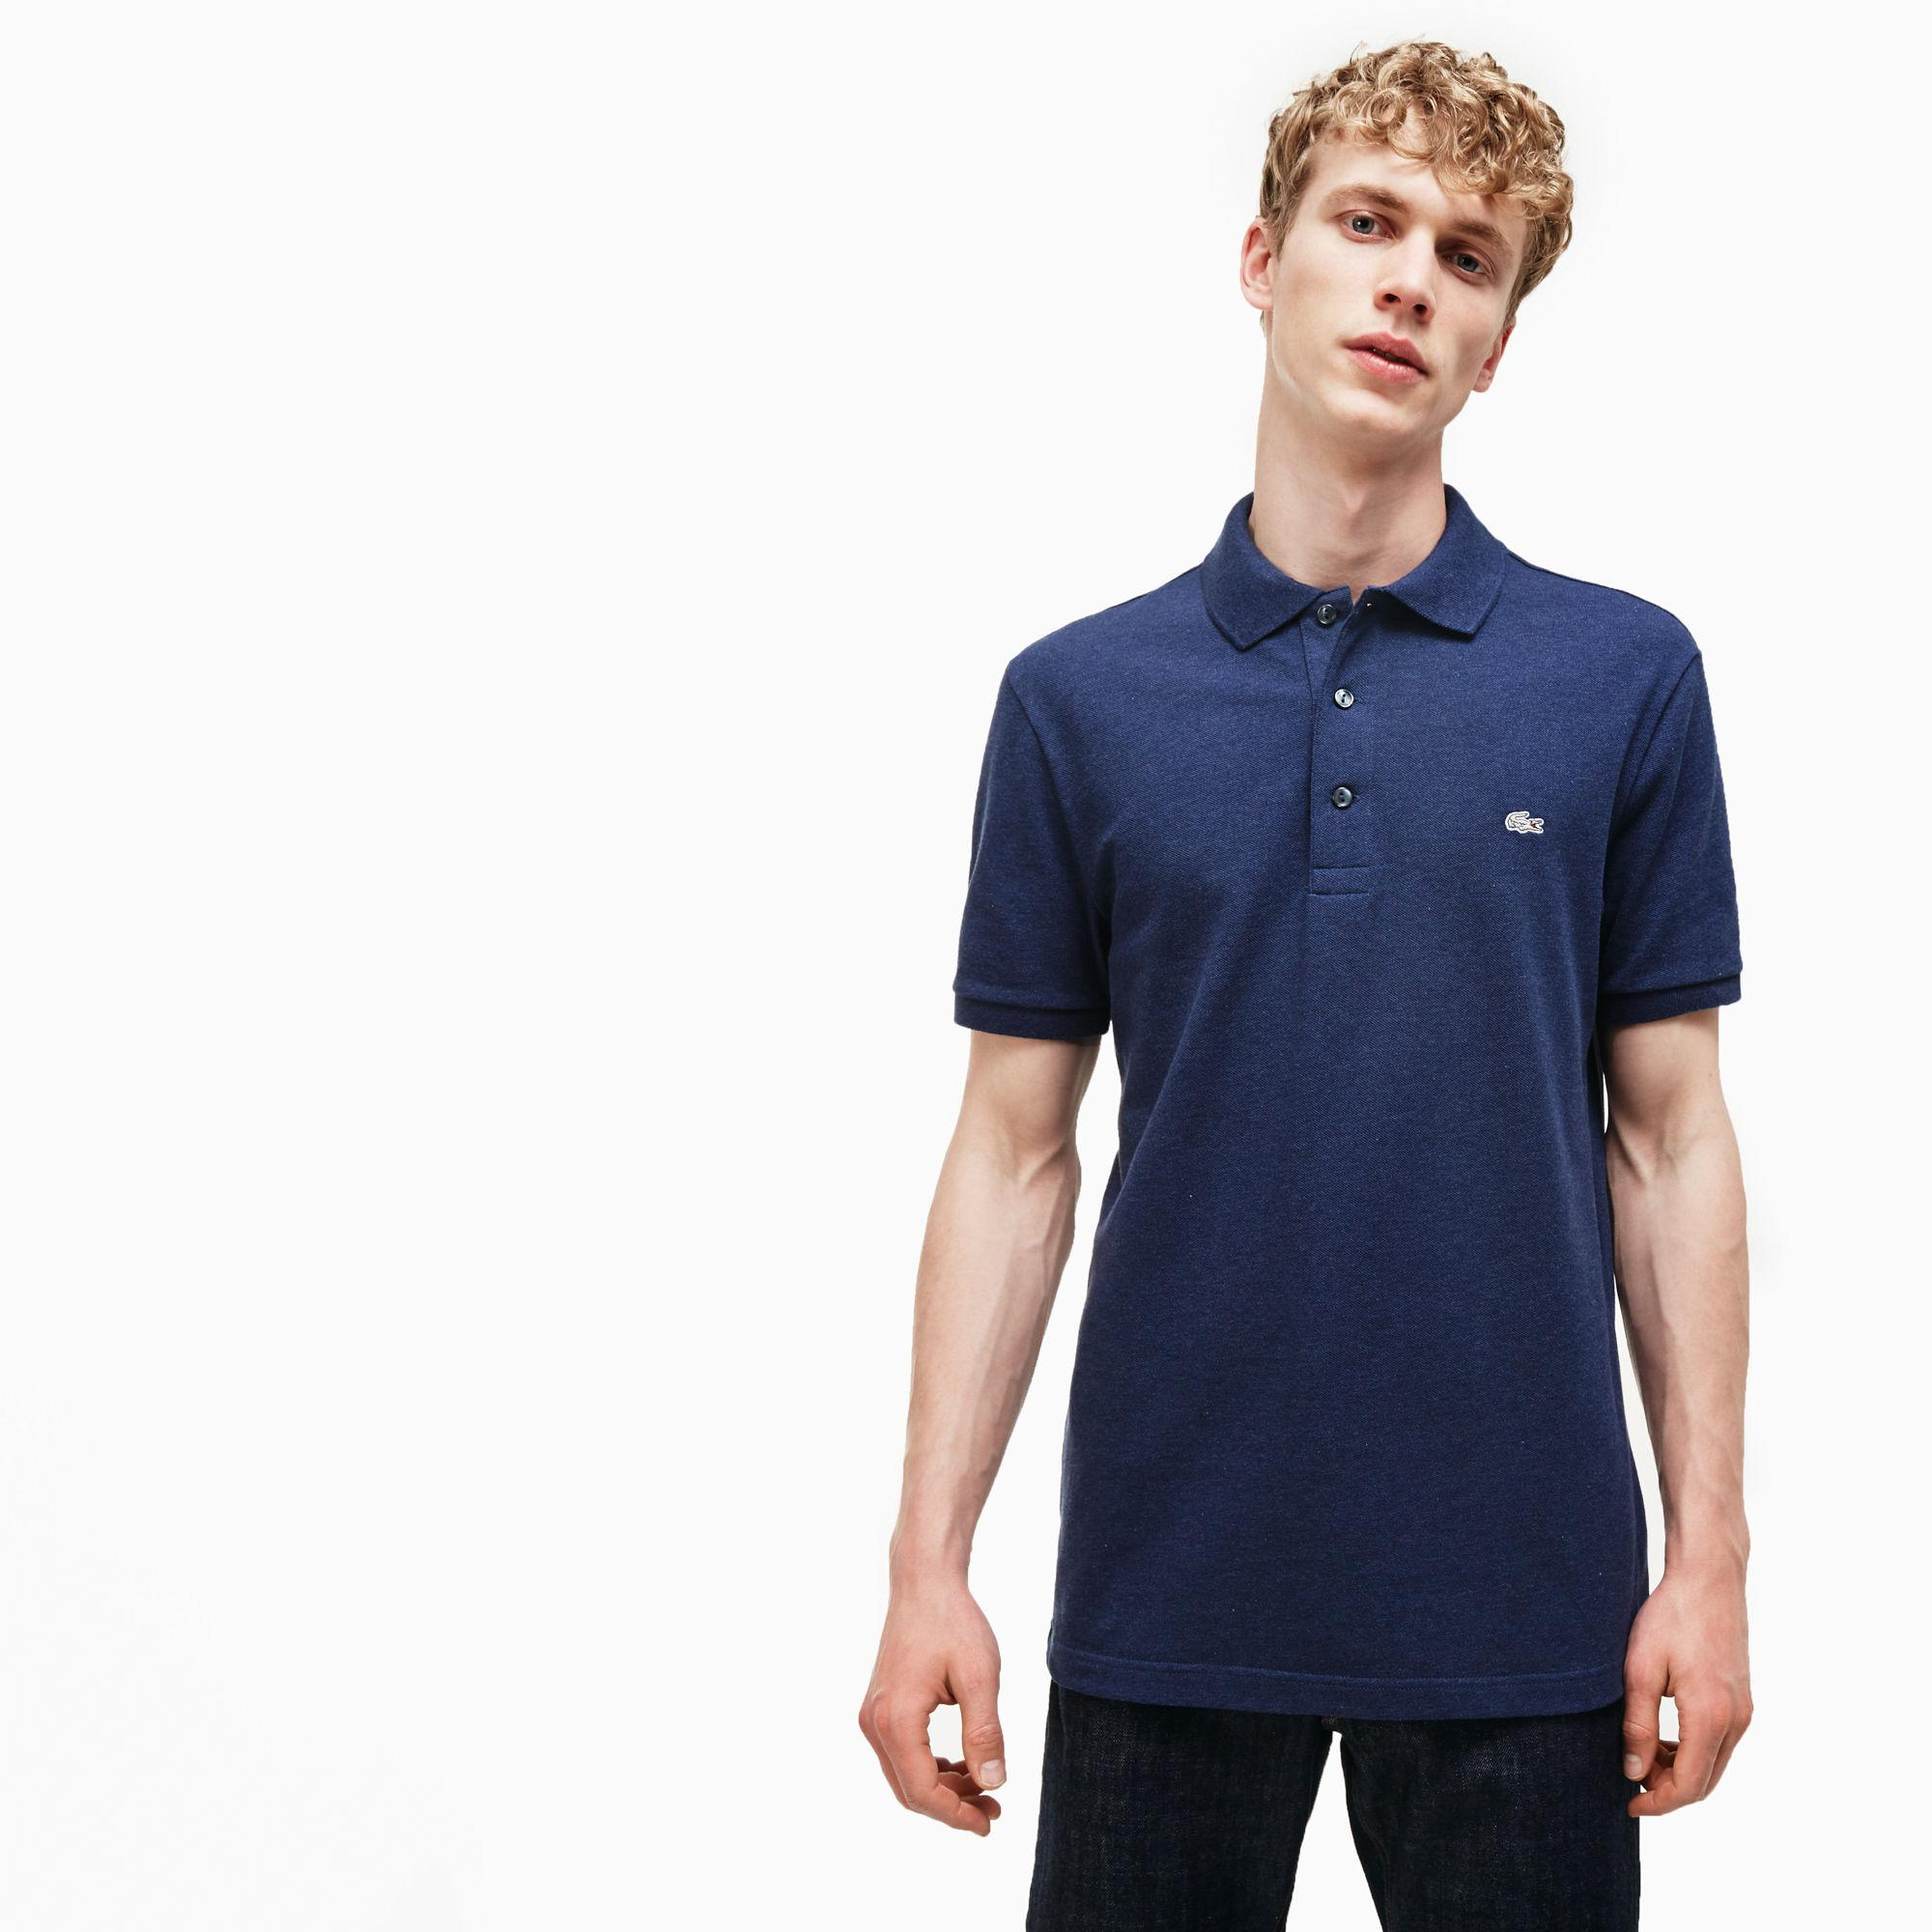 f441ae3859 Lyst - Lacoste Slim Fit Polo Shirt In Stretch Petit Piqué in White ...